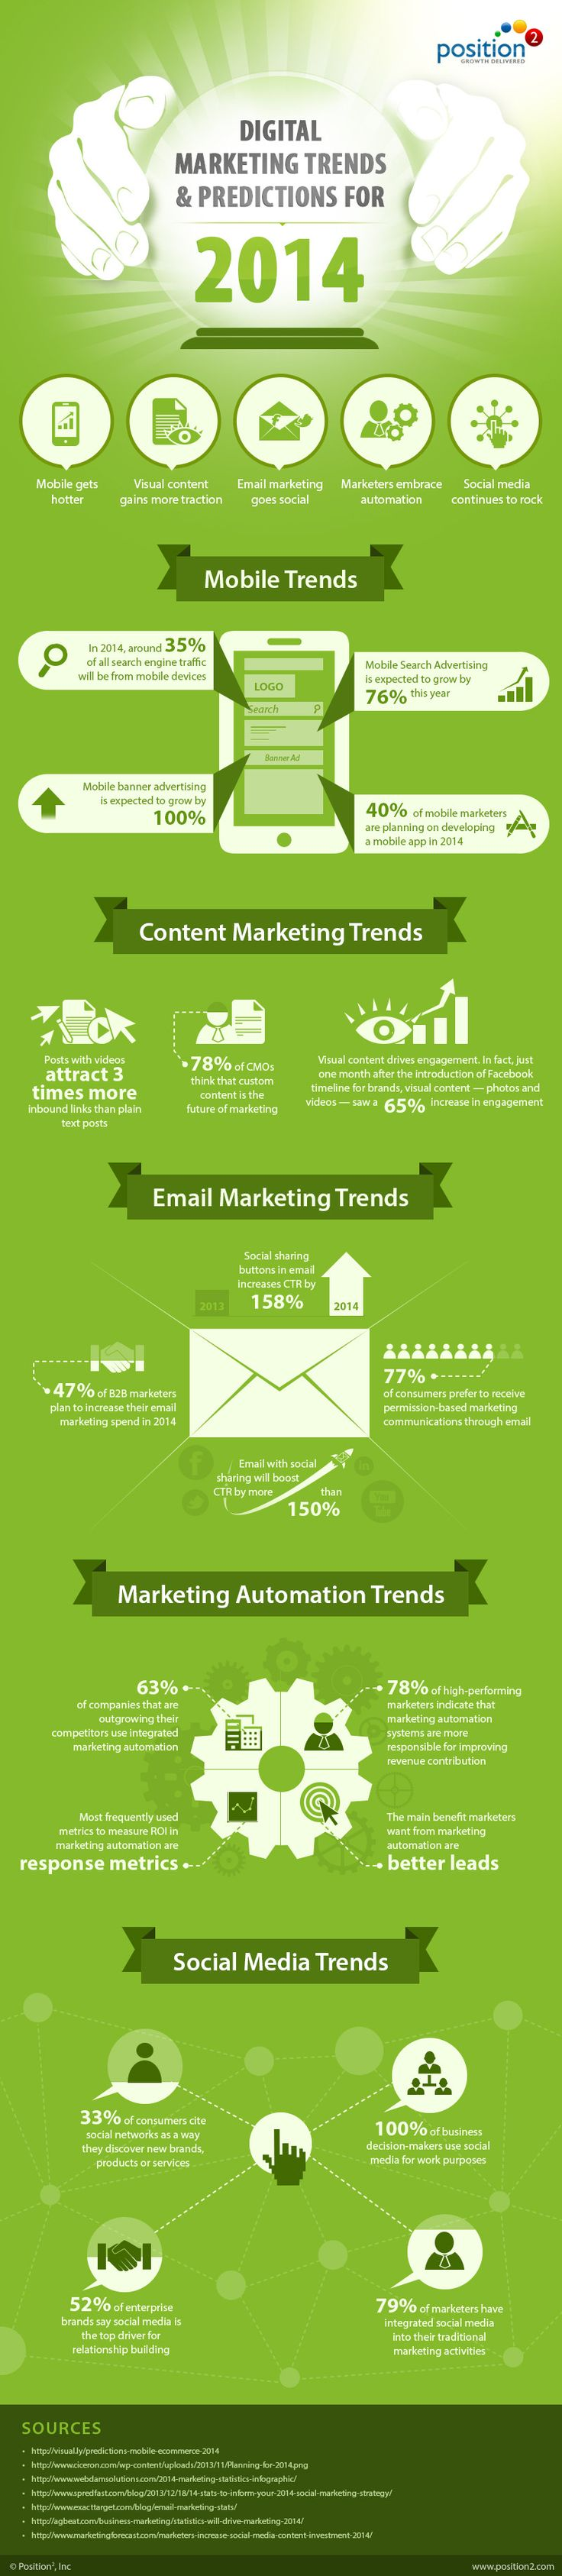 19 Digital Marketing Trends And Predictions for 2014 - #infographic #DigitalMarketing #onlinemarketing #smm #in